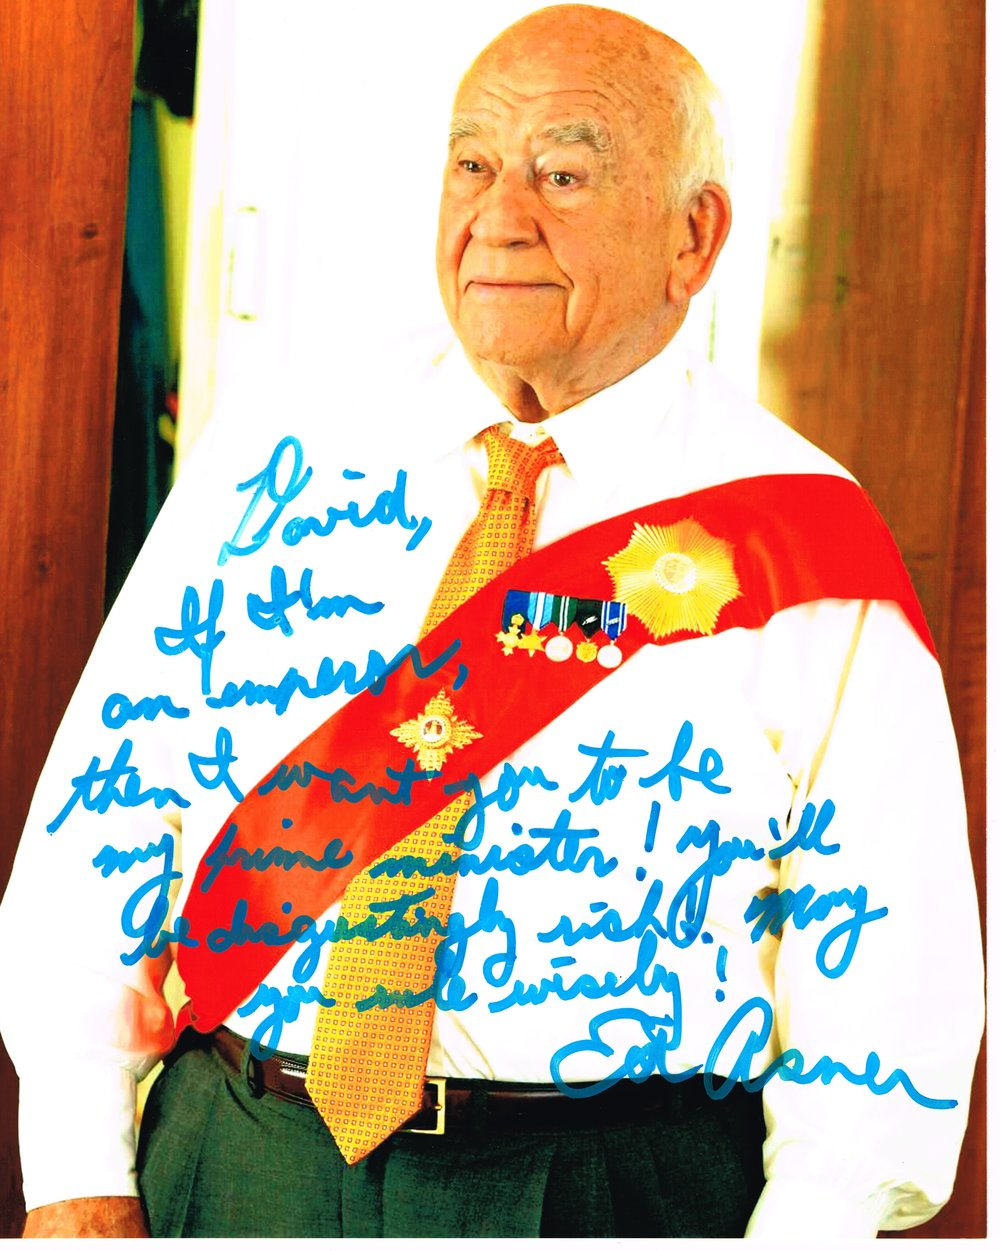 David, If I'm an emperor, then I want you to be my prime minister…  Ed Asner